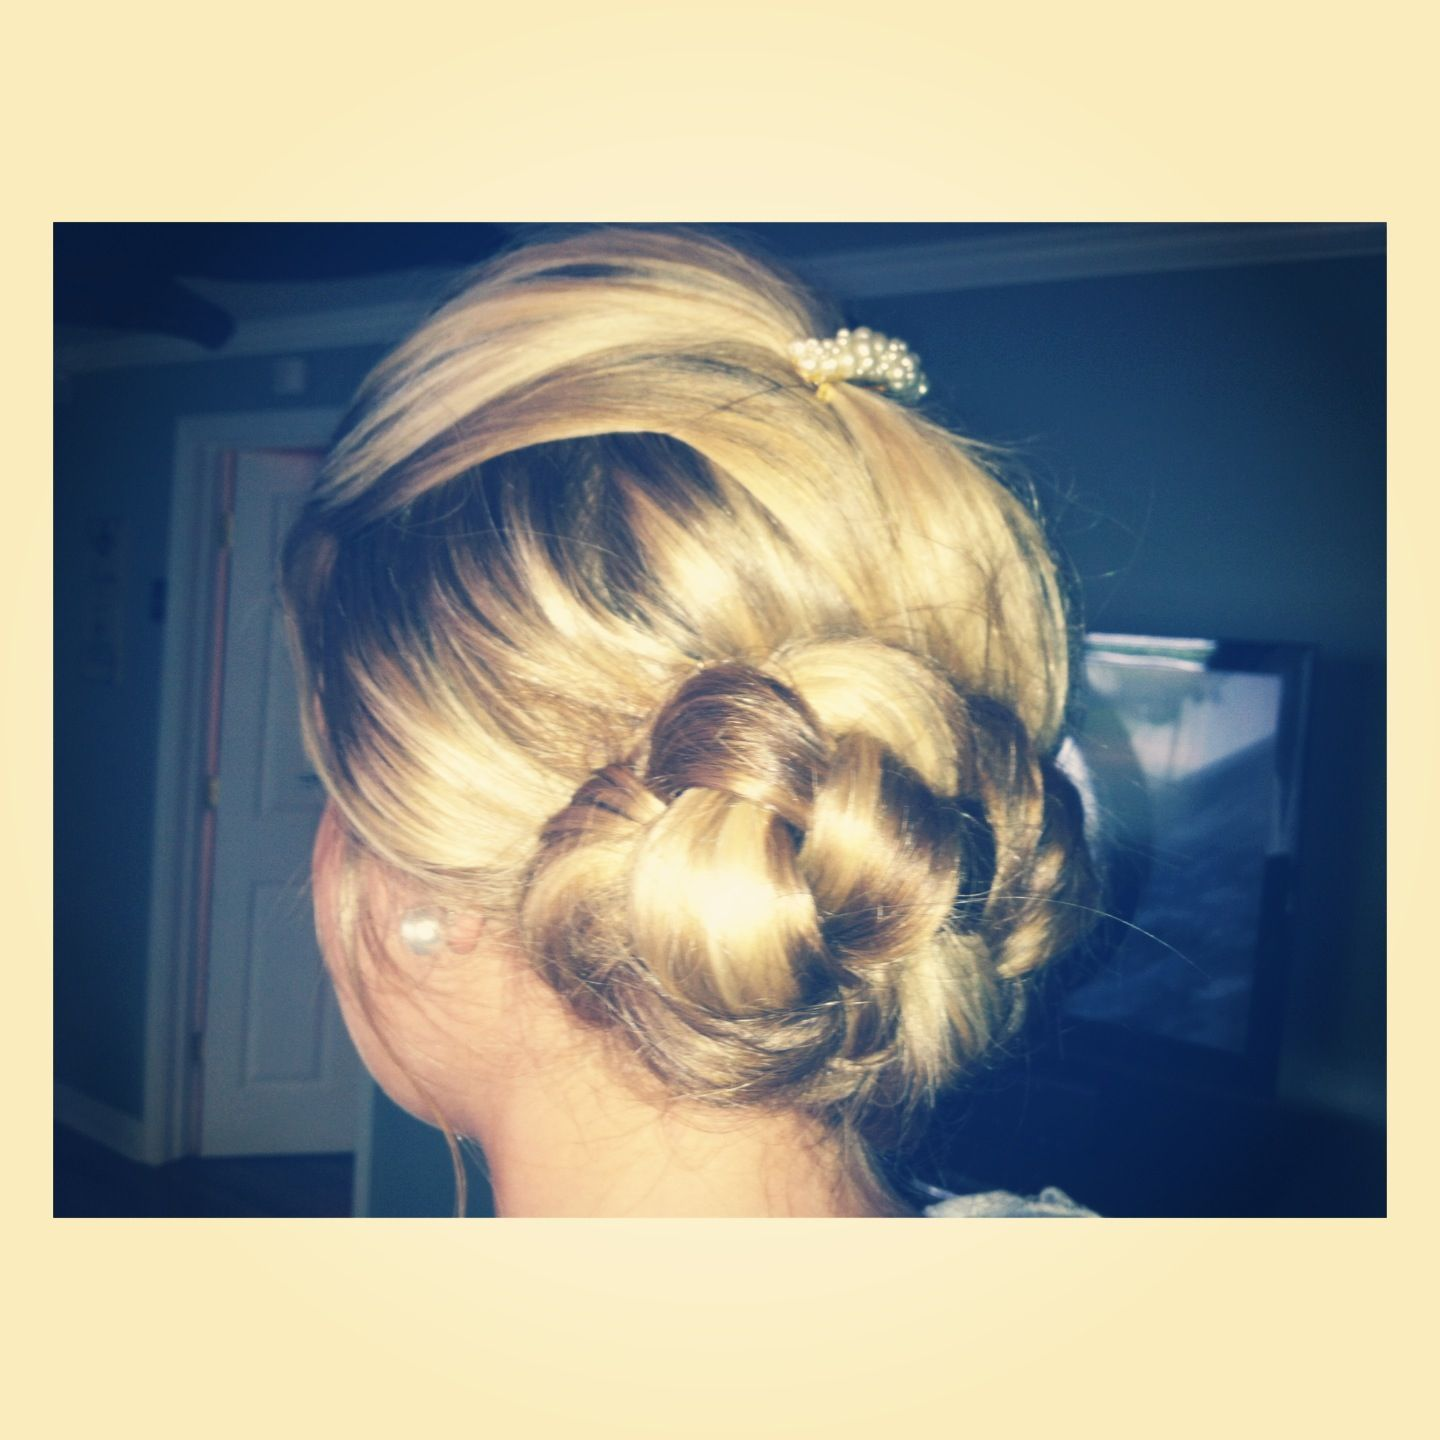 Braided low side bun with a little tease :) #lowsidebuns Braided low side bun with a little tease :) #lowsidebuns Braided low side bun with a little tease :) #lowsidebuns Braided low side bun with a little tease :) #weddingsidebuns Braided low side bun with a little tease :) #lowsidebuns Braided low side bun with a little tease :) #lowsidebuns Braided low side bun with a little tease :) #lowsidebuns Braided low side bun with a little tease :) #weddingsidebuns